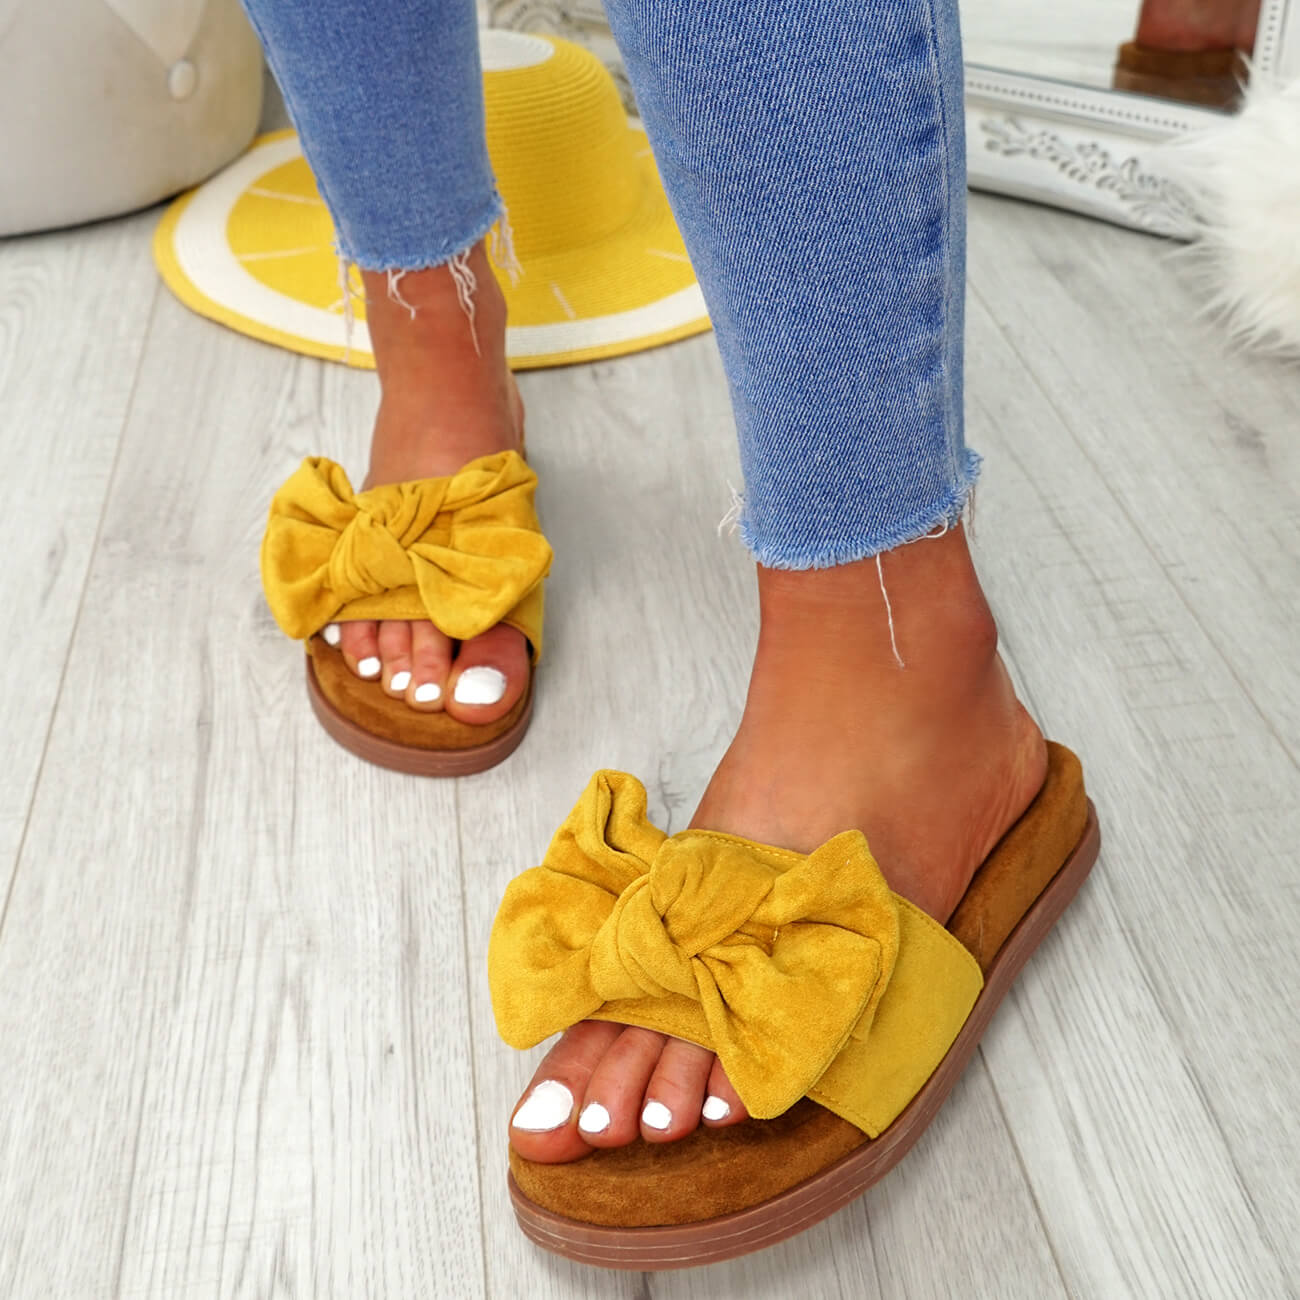 WOMENS-LADIES-FLAT-SANDALS-FRONT-BOW-COMFY-SUMMER-CASUAL-HOLIDAY-SHOES-SIZE-UK thumbnail 28